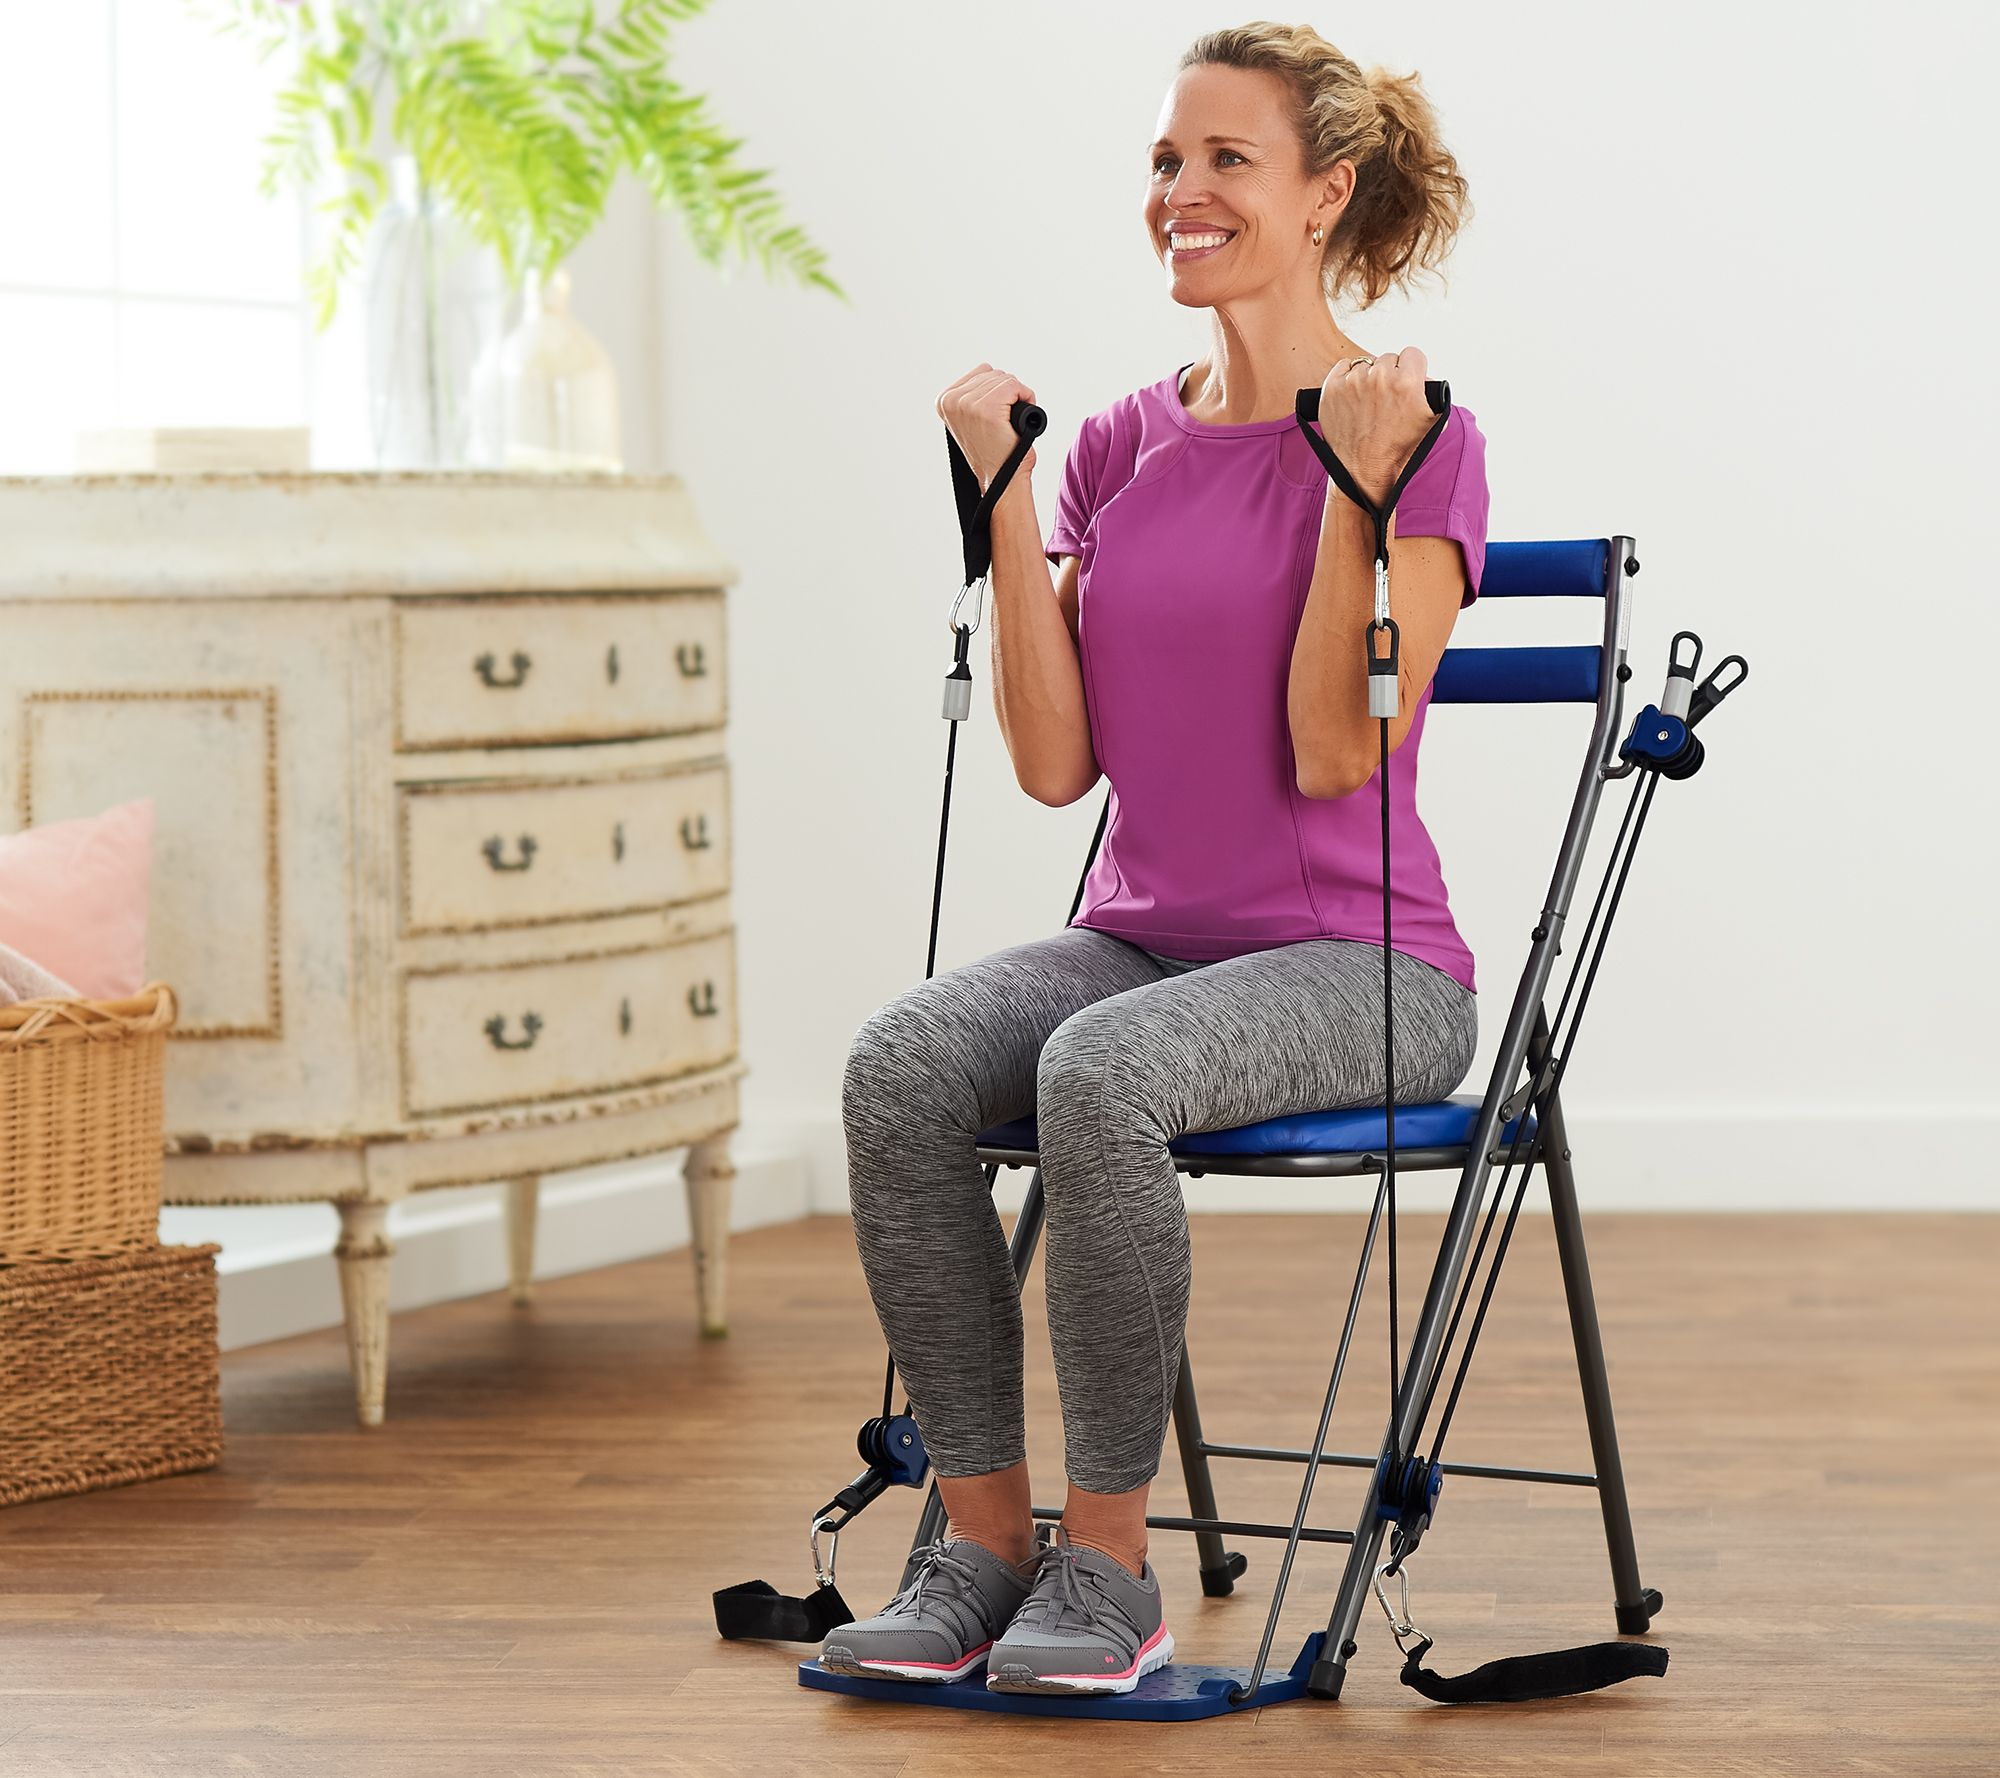 chair gym exercise system with twister seat inexpensive living room chairs workout 3 levels of resistance and 5 dvds page 1 qvc com